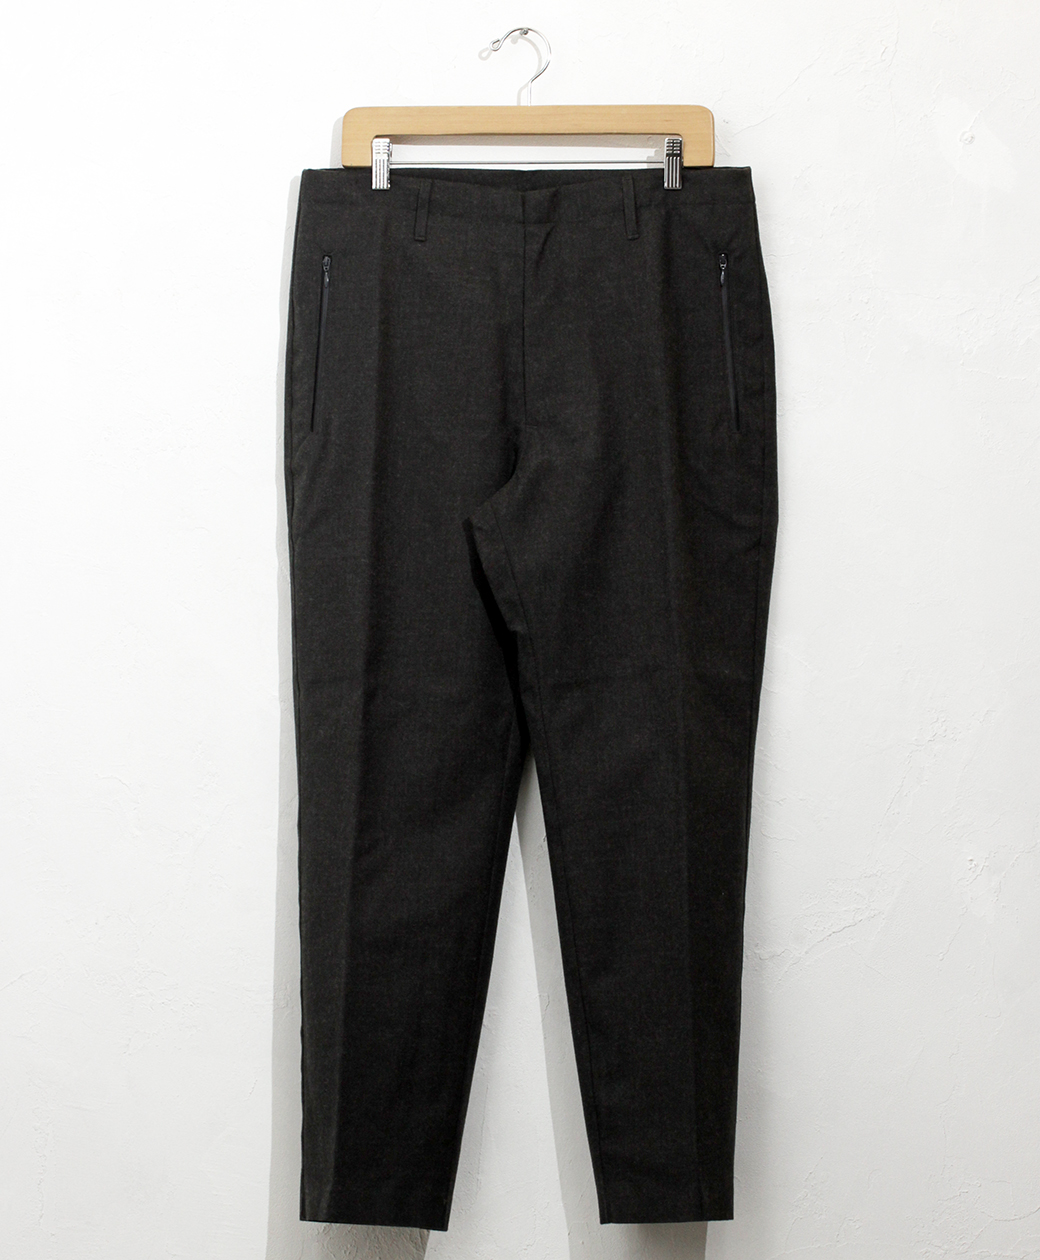 DESCENTE DESCENTE PAUSE WOOL MIX PANTS(CGRY)